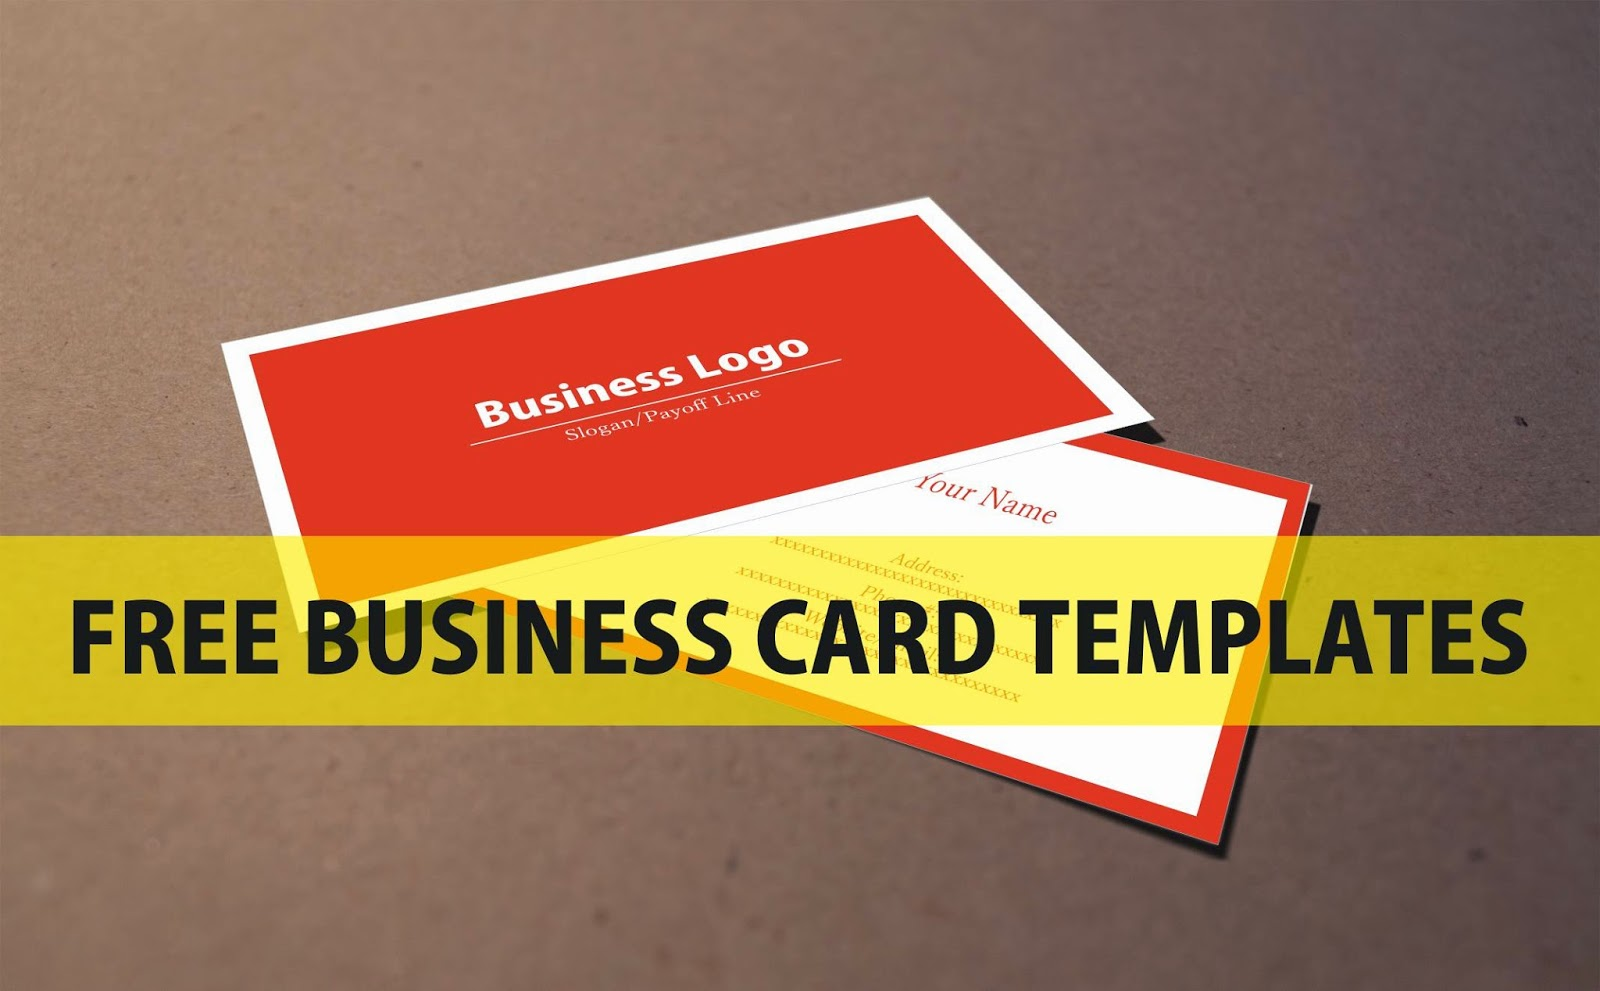 Free Business Card Template Download Coreldraw File A Graphic